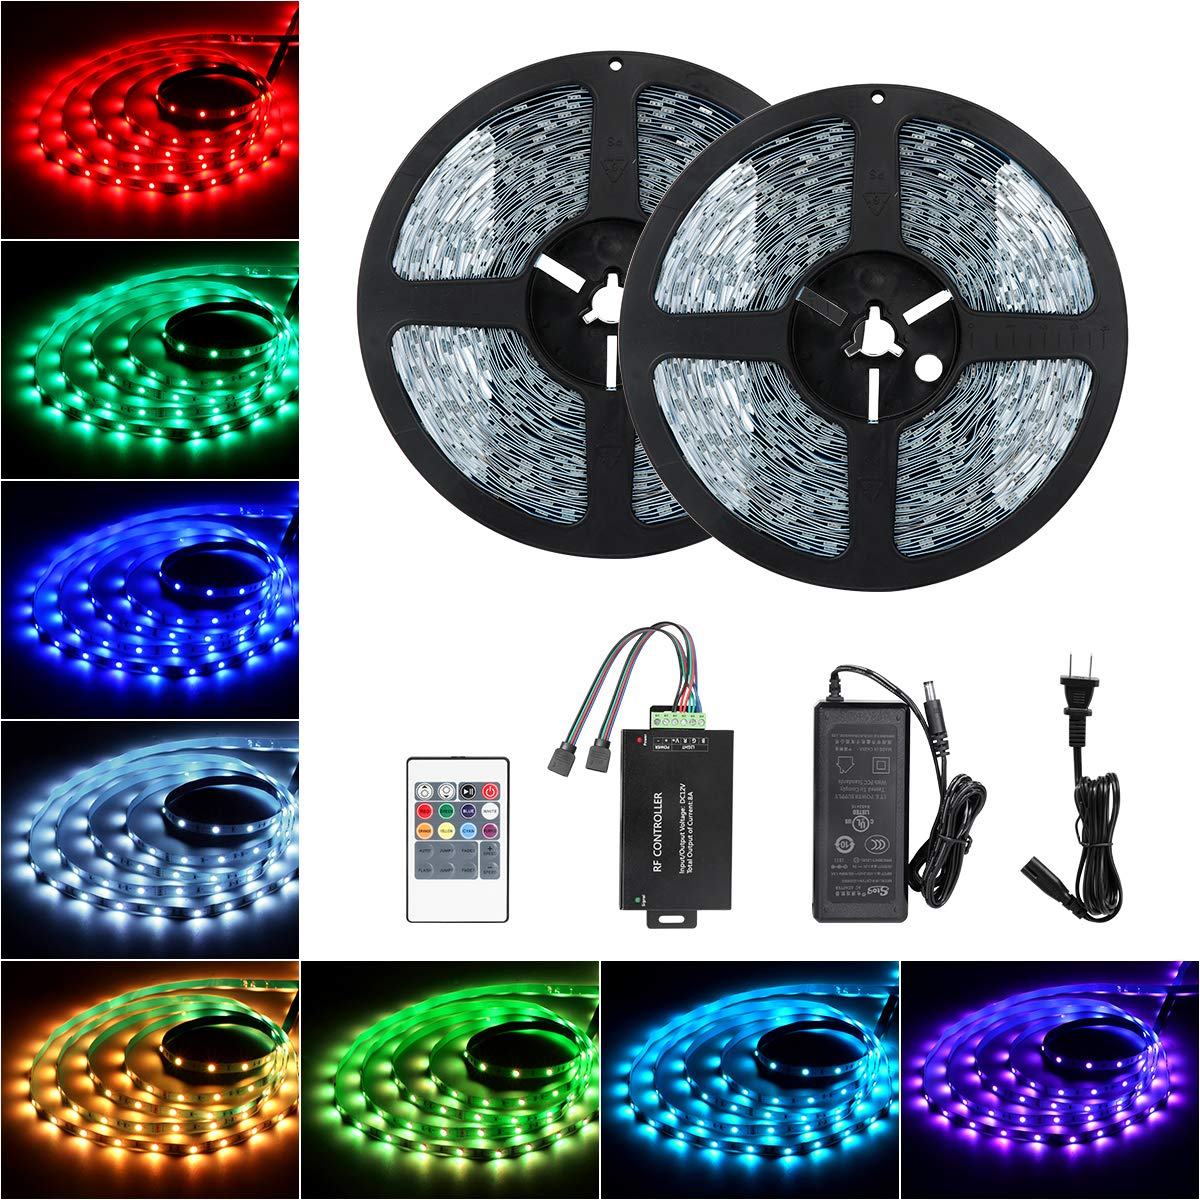 Tingkam 98.4 ft 30 M Non-Waterproof 5050 SMD RGB LED Flexible Strip Light White PCB Board Color Changing Decoration Lighting 300 LEDs Kit + 20 Key Remote Controller